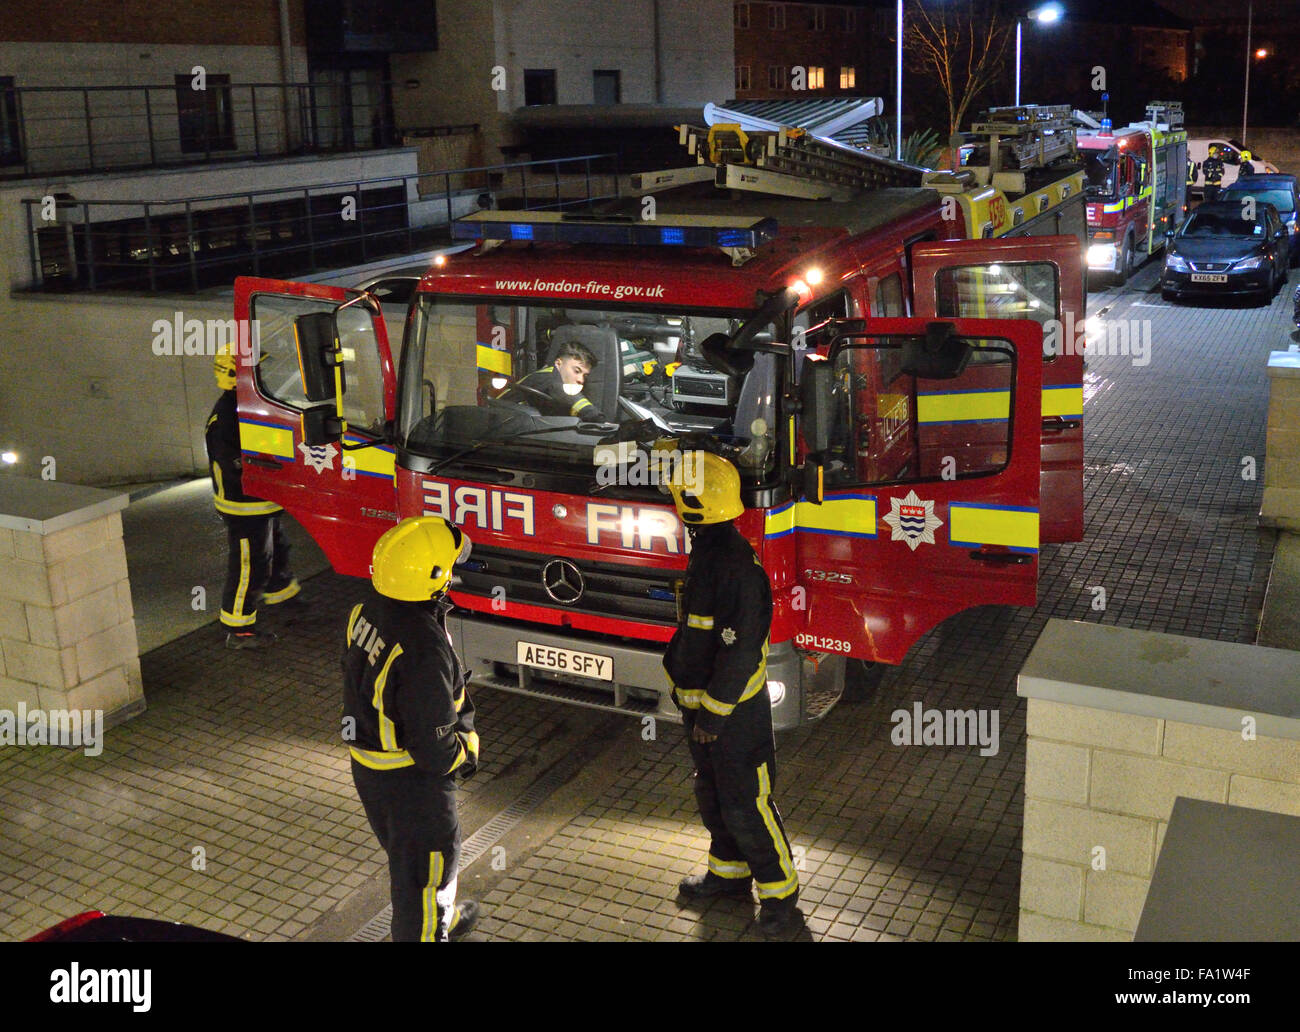 Two appliances from London Fire Brigade attend a flat fire in North Woolwich, London - Stock Image